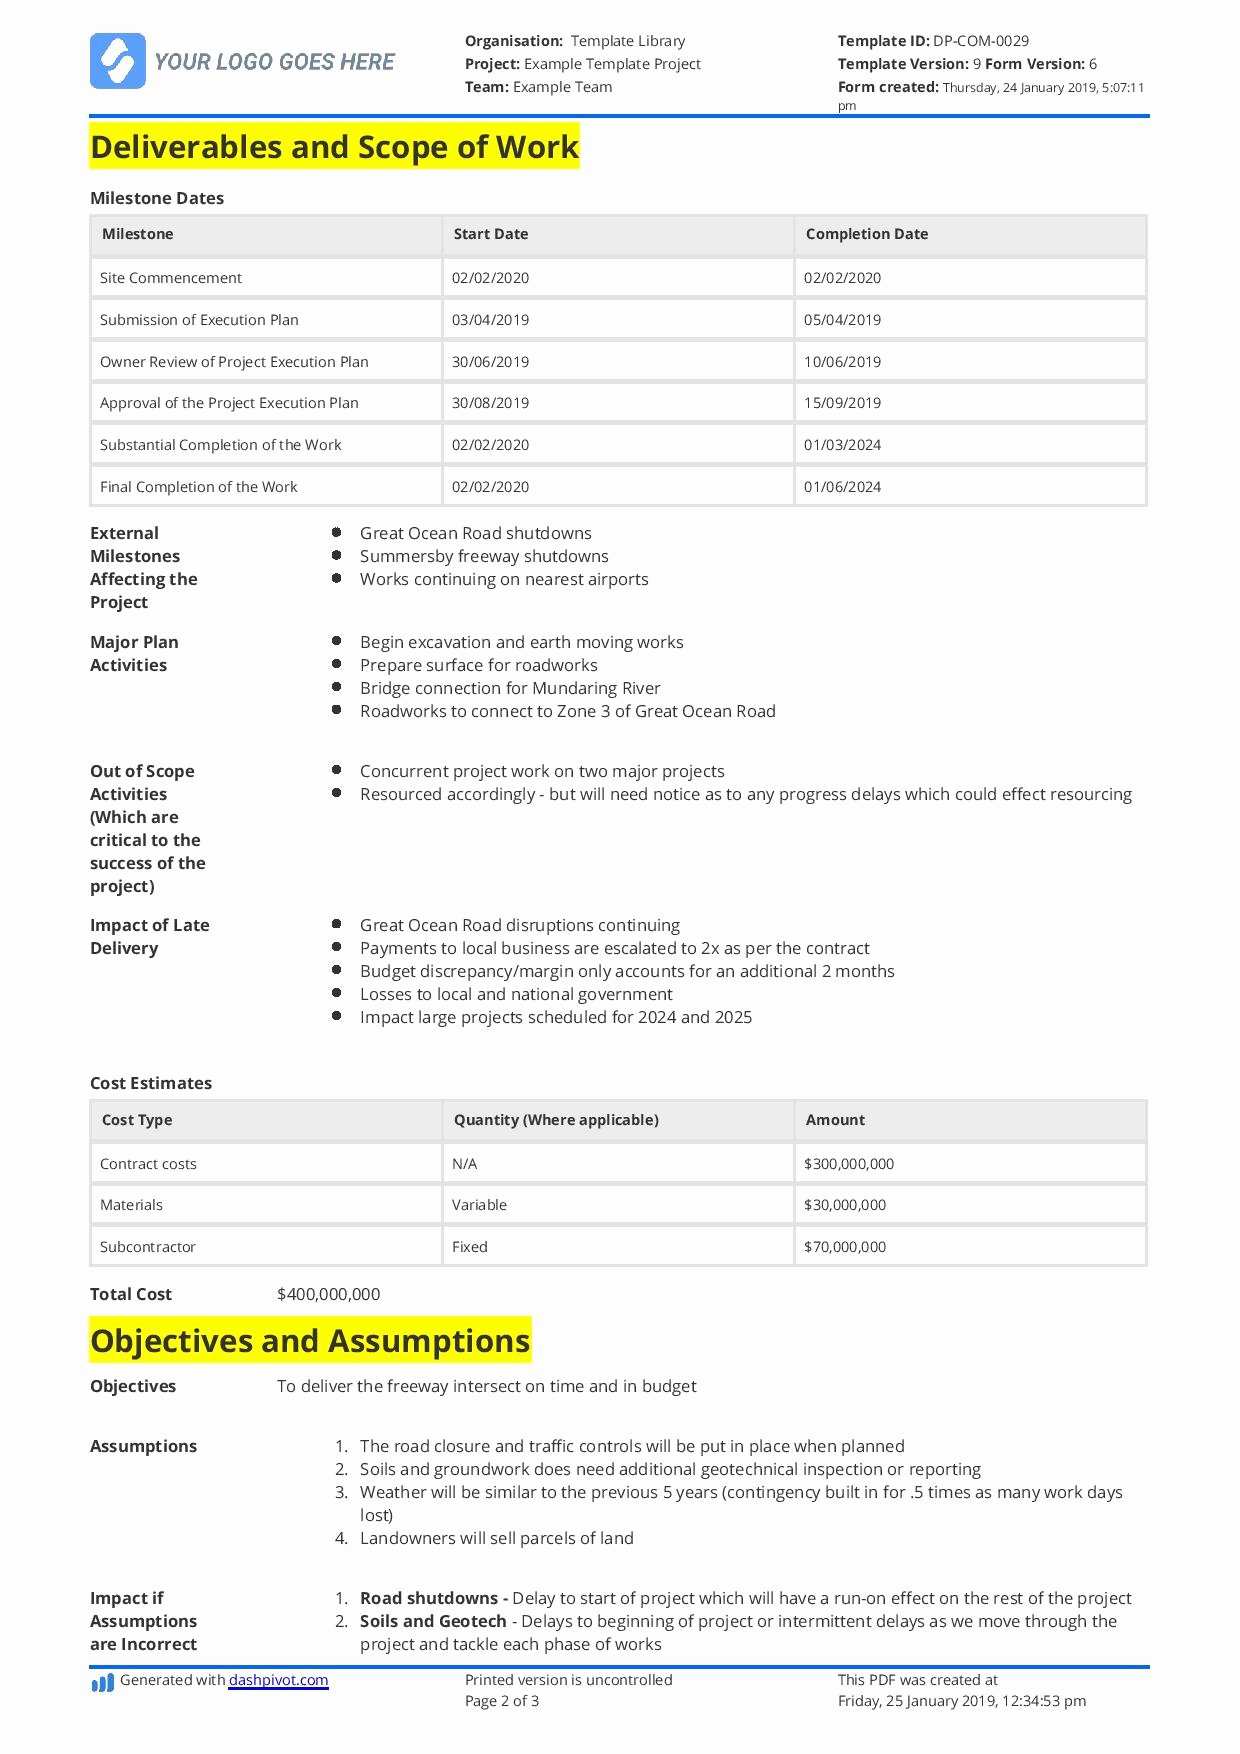 Simple Scope Of Work Template Inspirational Simple Scope Of Work Example You Can Use or Copy for Free